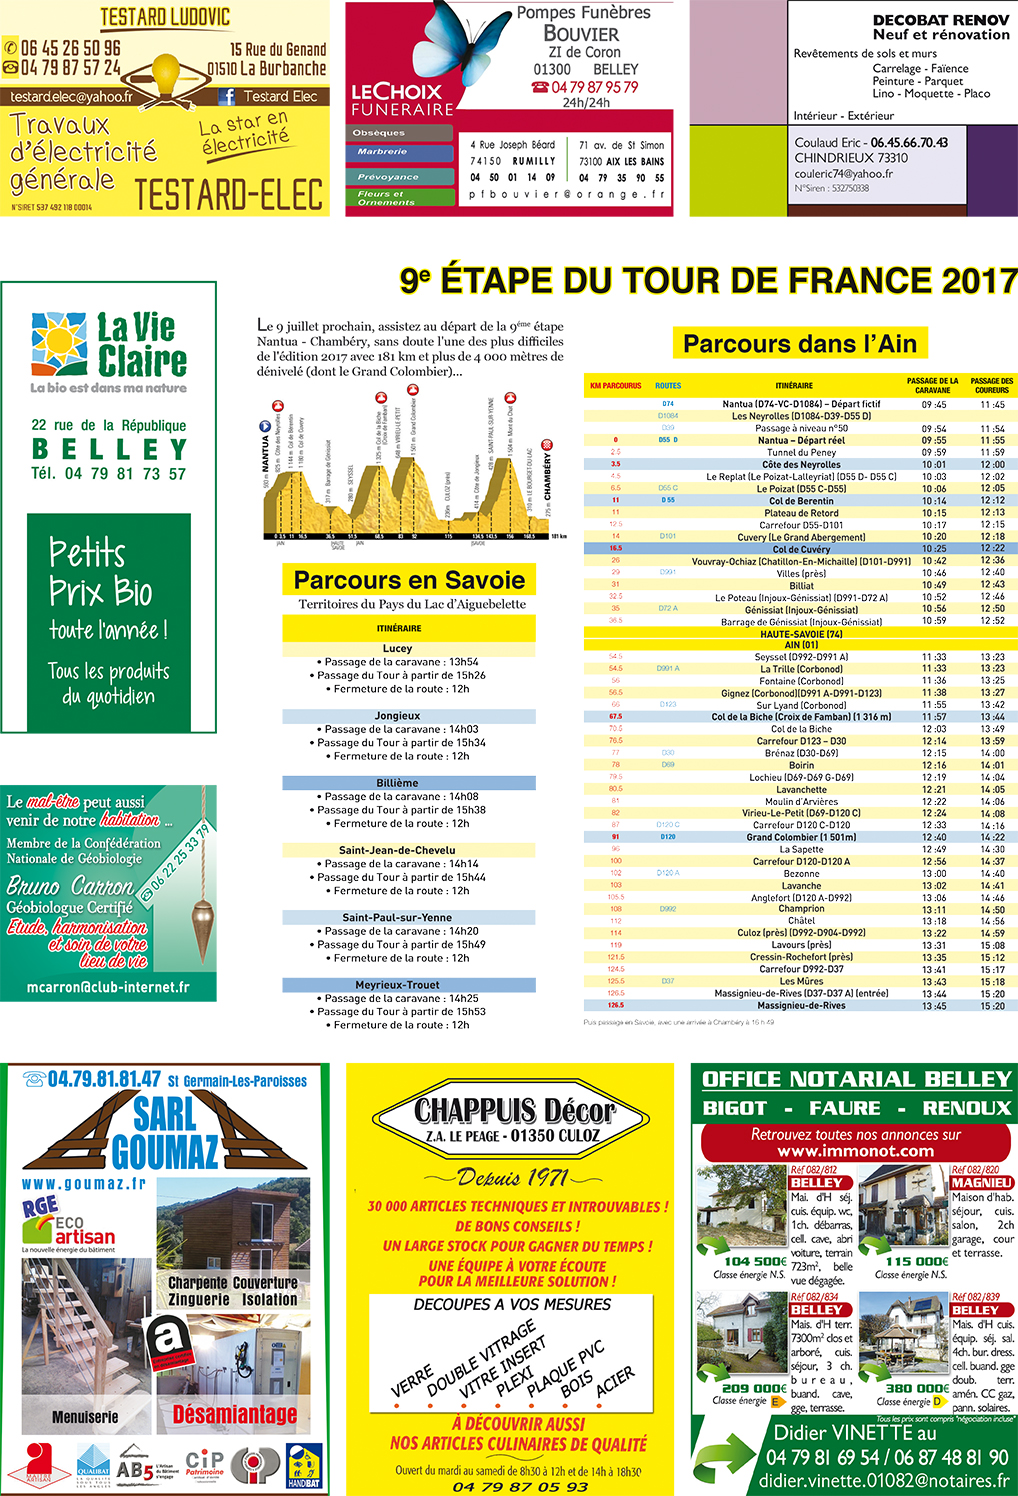 Office Tourisme Nantua Tour De France Animations Nantua ChambÉry 9 Juillet Ballad